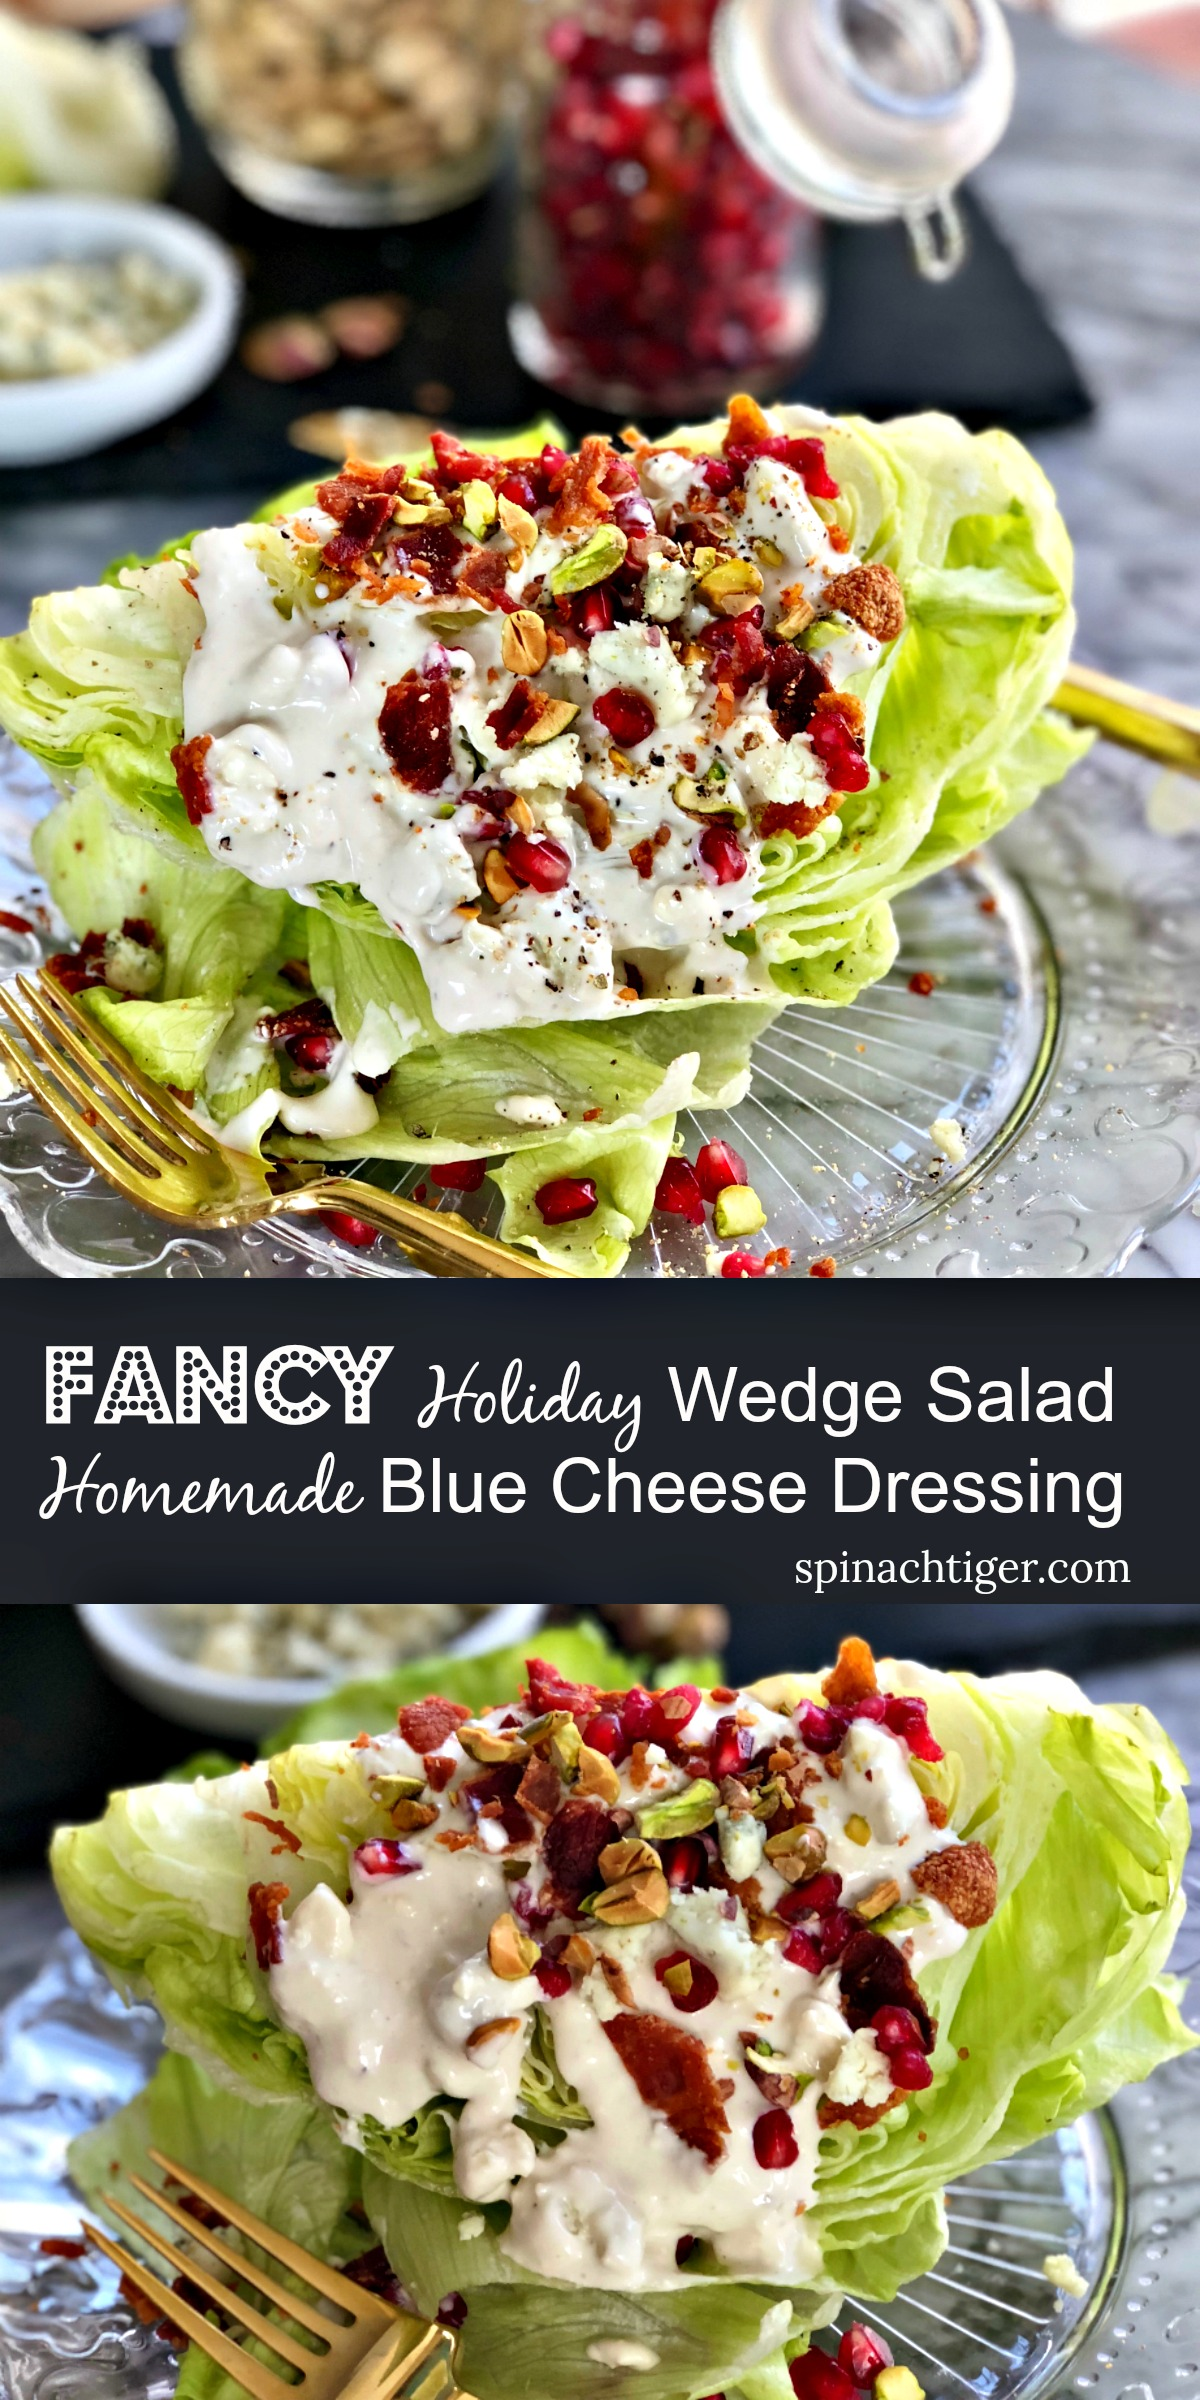 Make classic wedge salad with homemade blue cheese Dressing. #bluecheesedressing #wedgesalad  via @angelaroberts